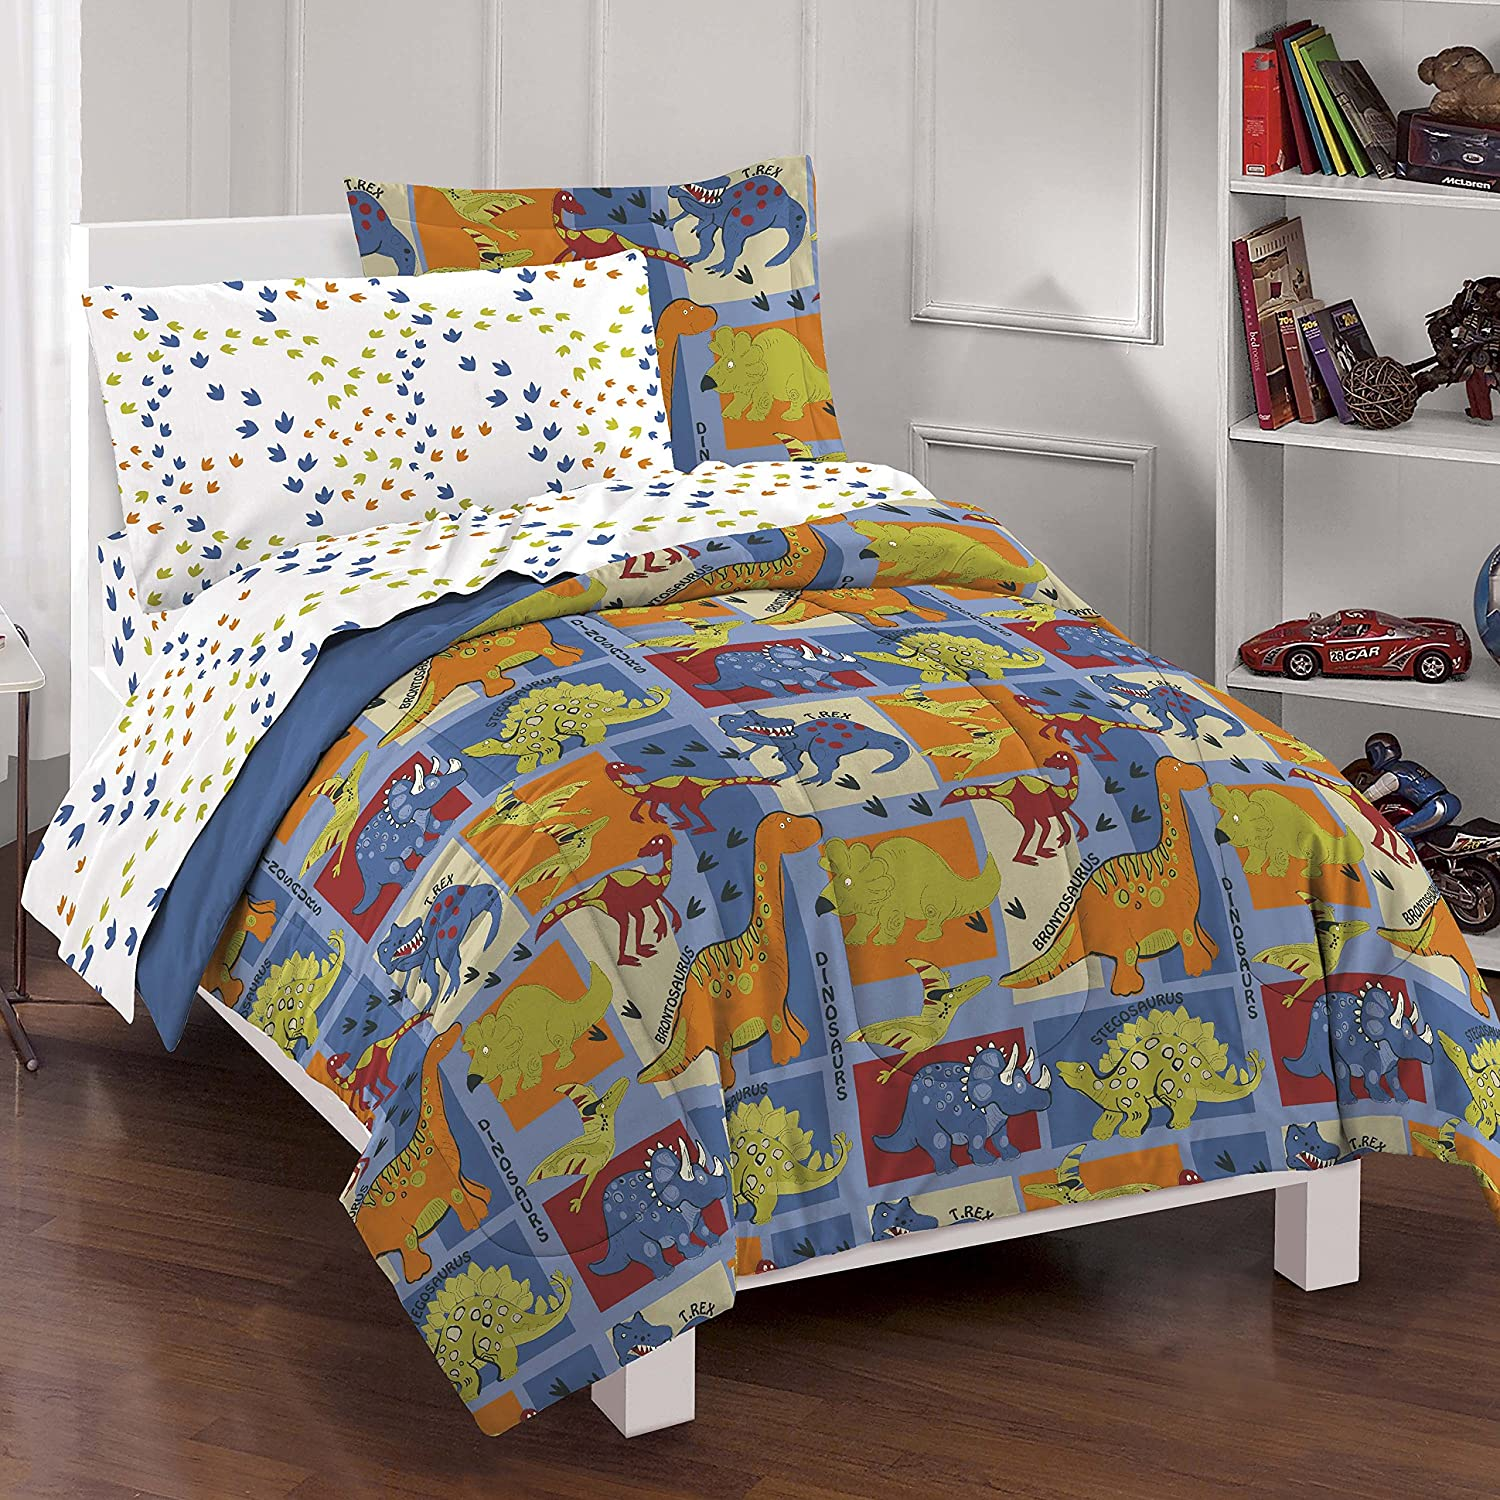 amazoncom dream factory dinosaur blocks ultra soft microfiber boys comforter set blue twin home u0026 kitchen